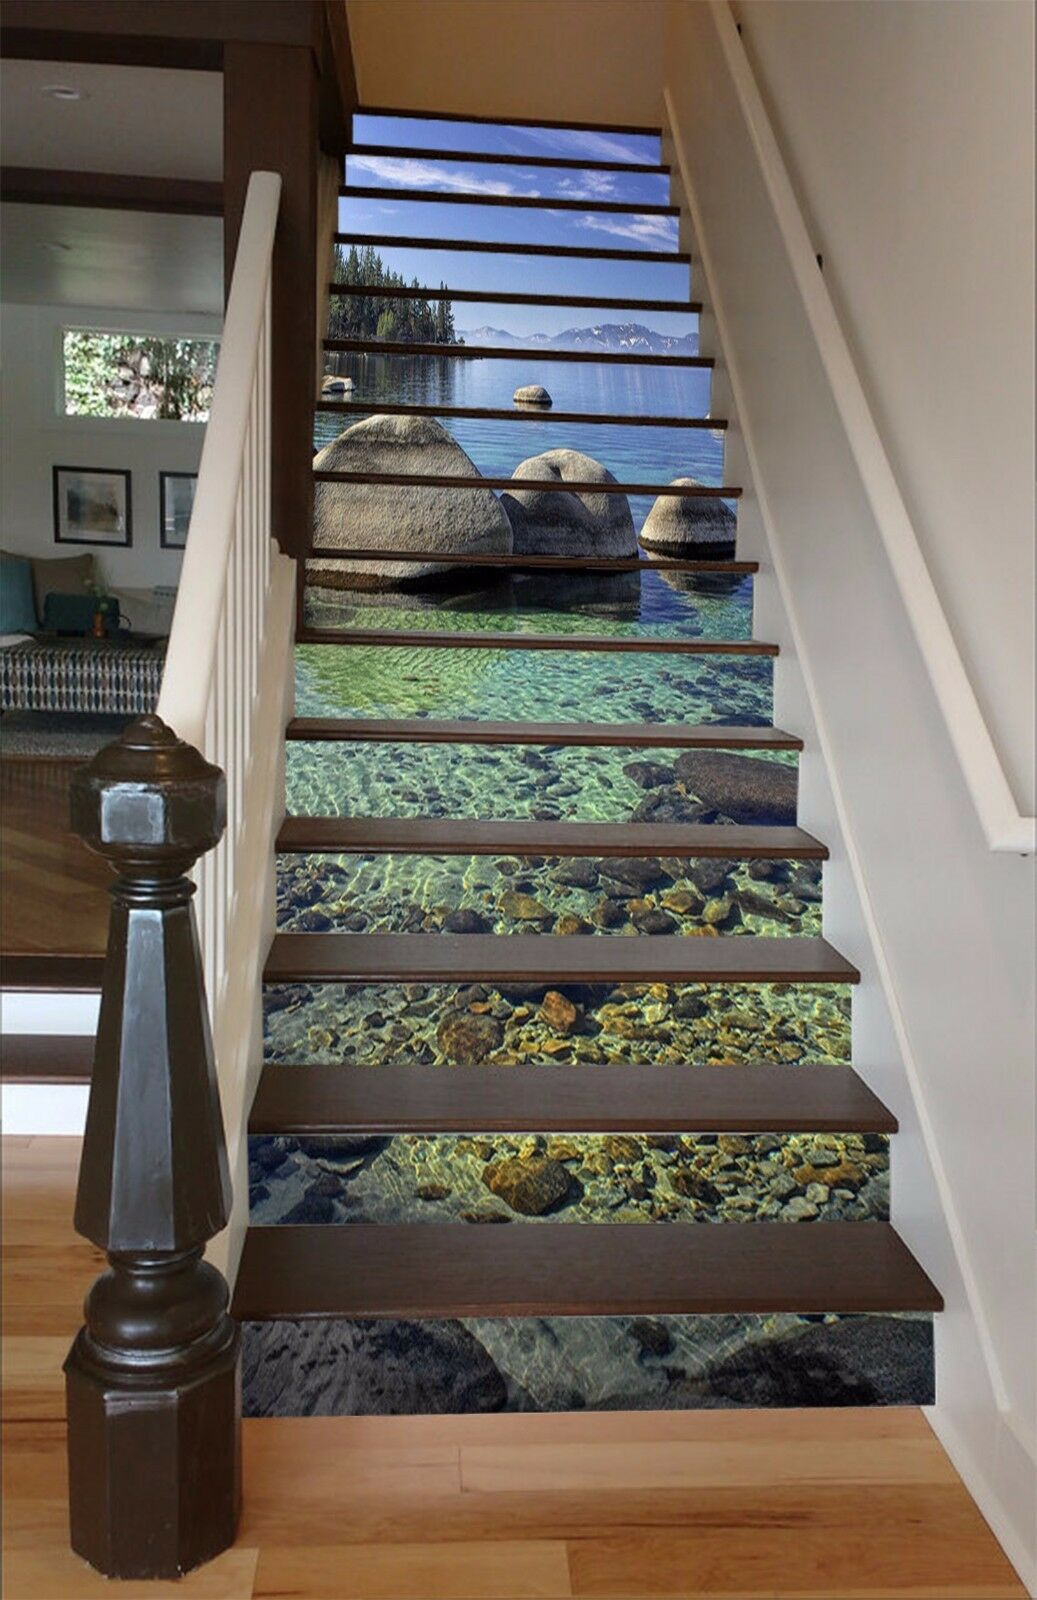 3D Clear Lake 054 Stairs Risers Decoration Photo Mural Vinyl Decal WandPapier US